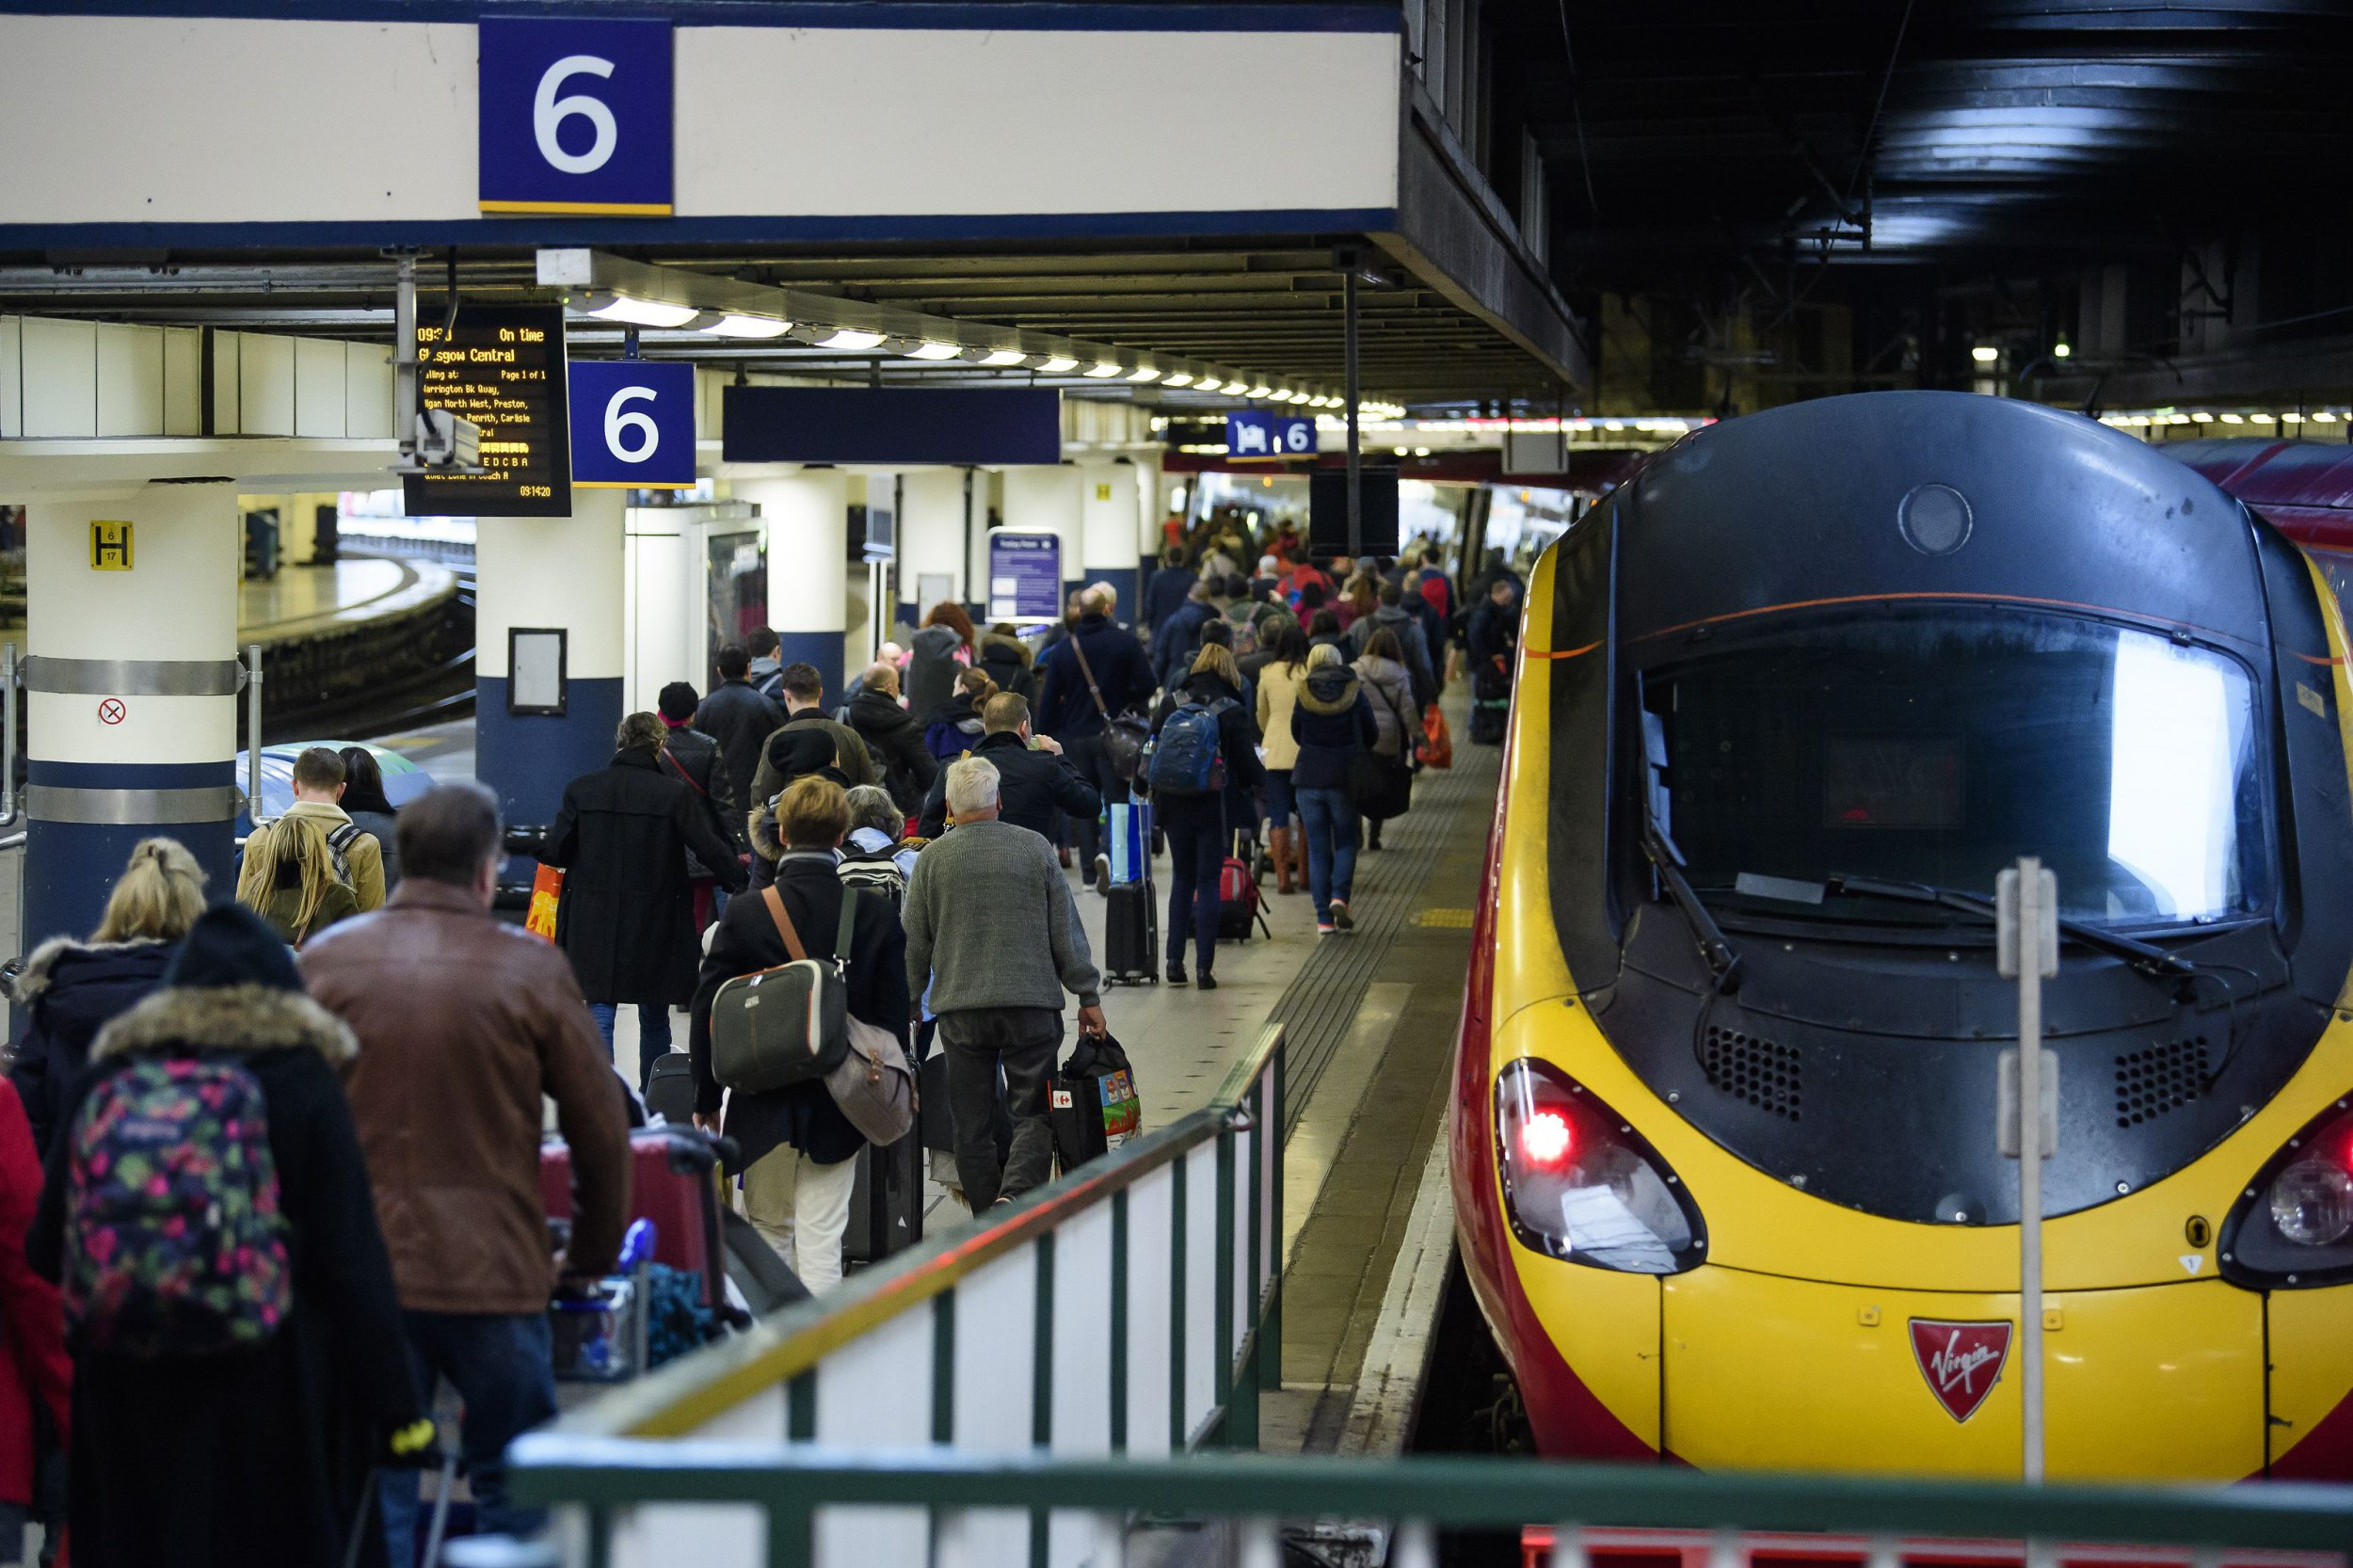 Chaos at Euston as all trains in and out of the station are cancelled